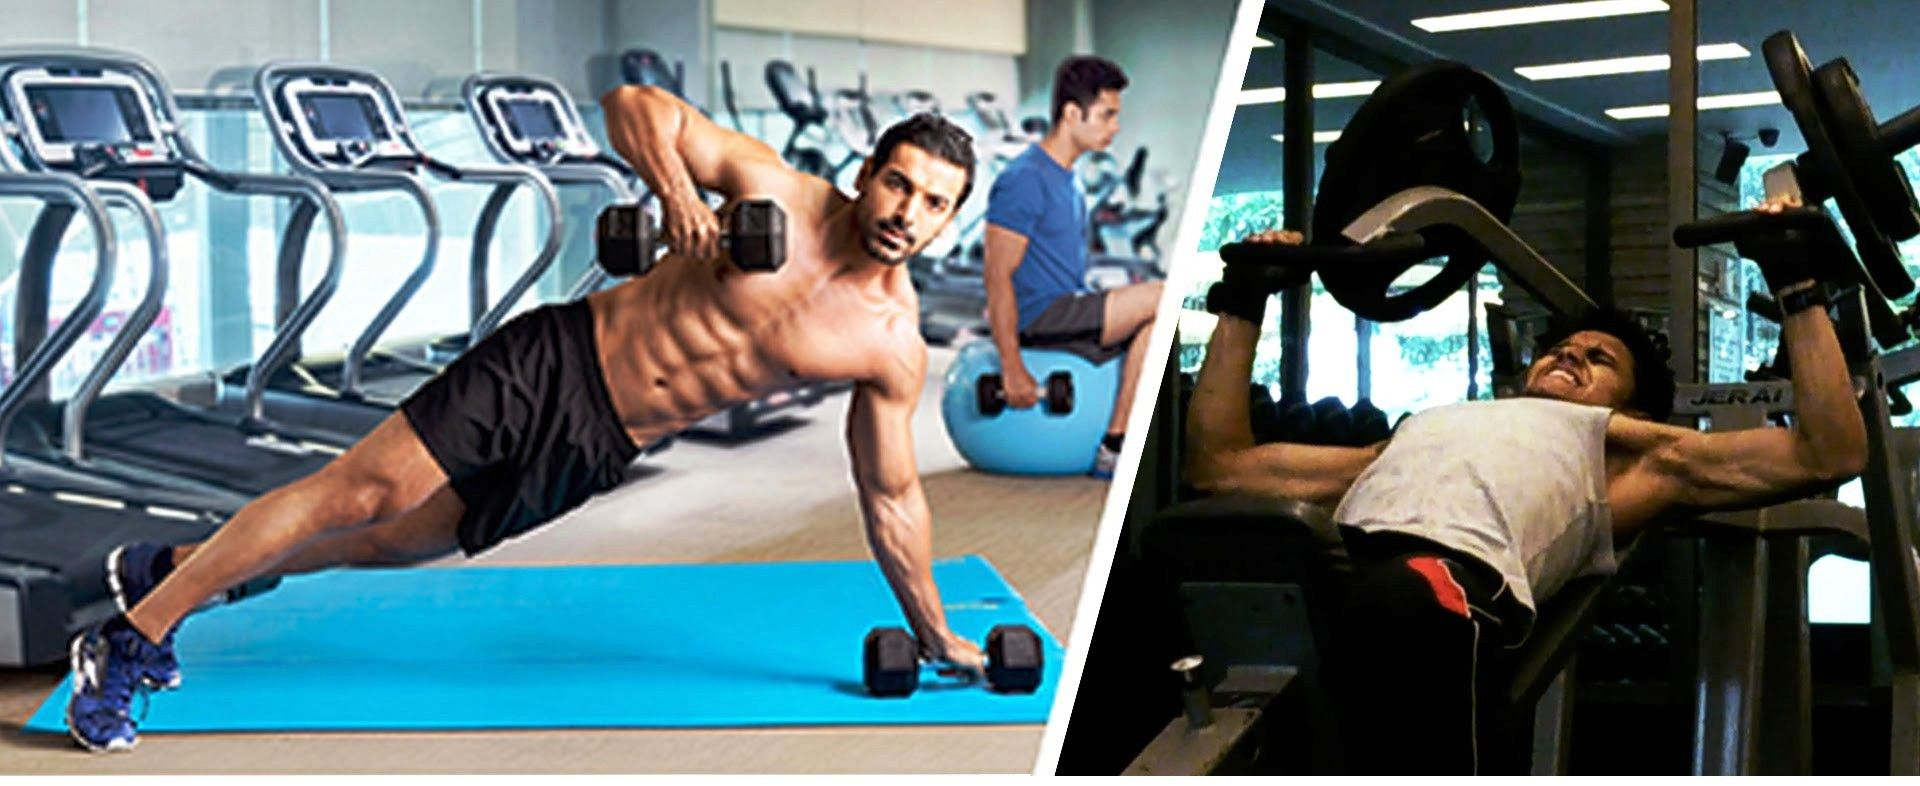 Sucheta Pal explains Summer Workout for Men http://mediaconvey.com/?p=12662 #workout #health #healthyliving #exercise #Zumba #gym #gymgirlsdaily